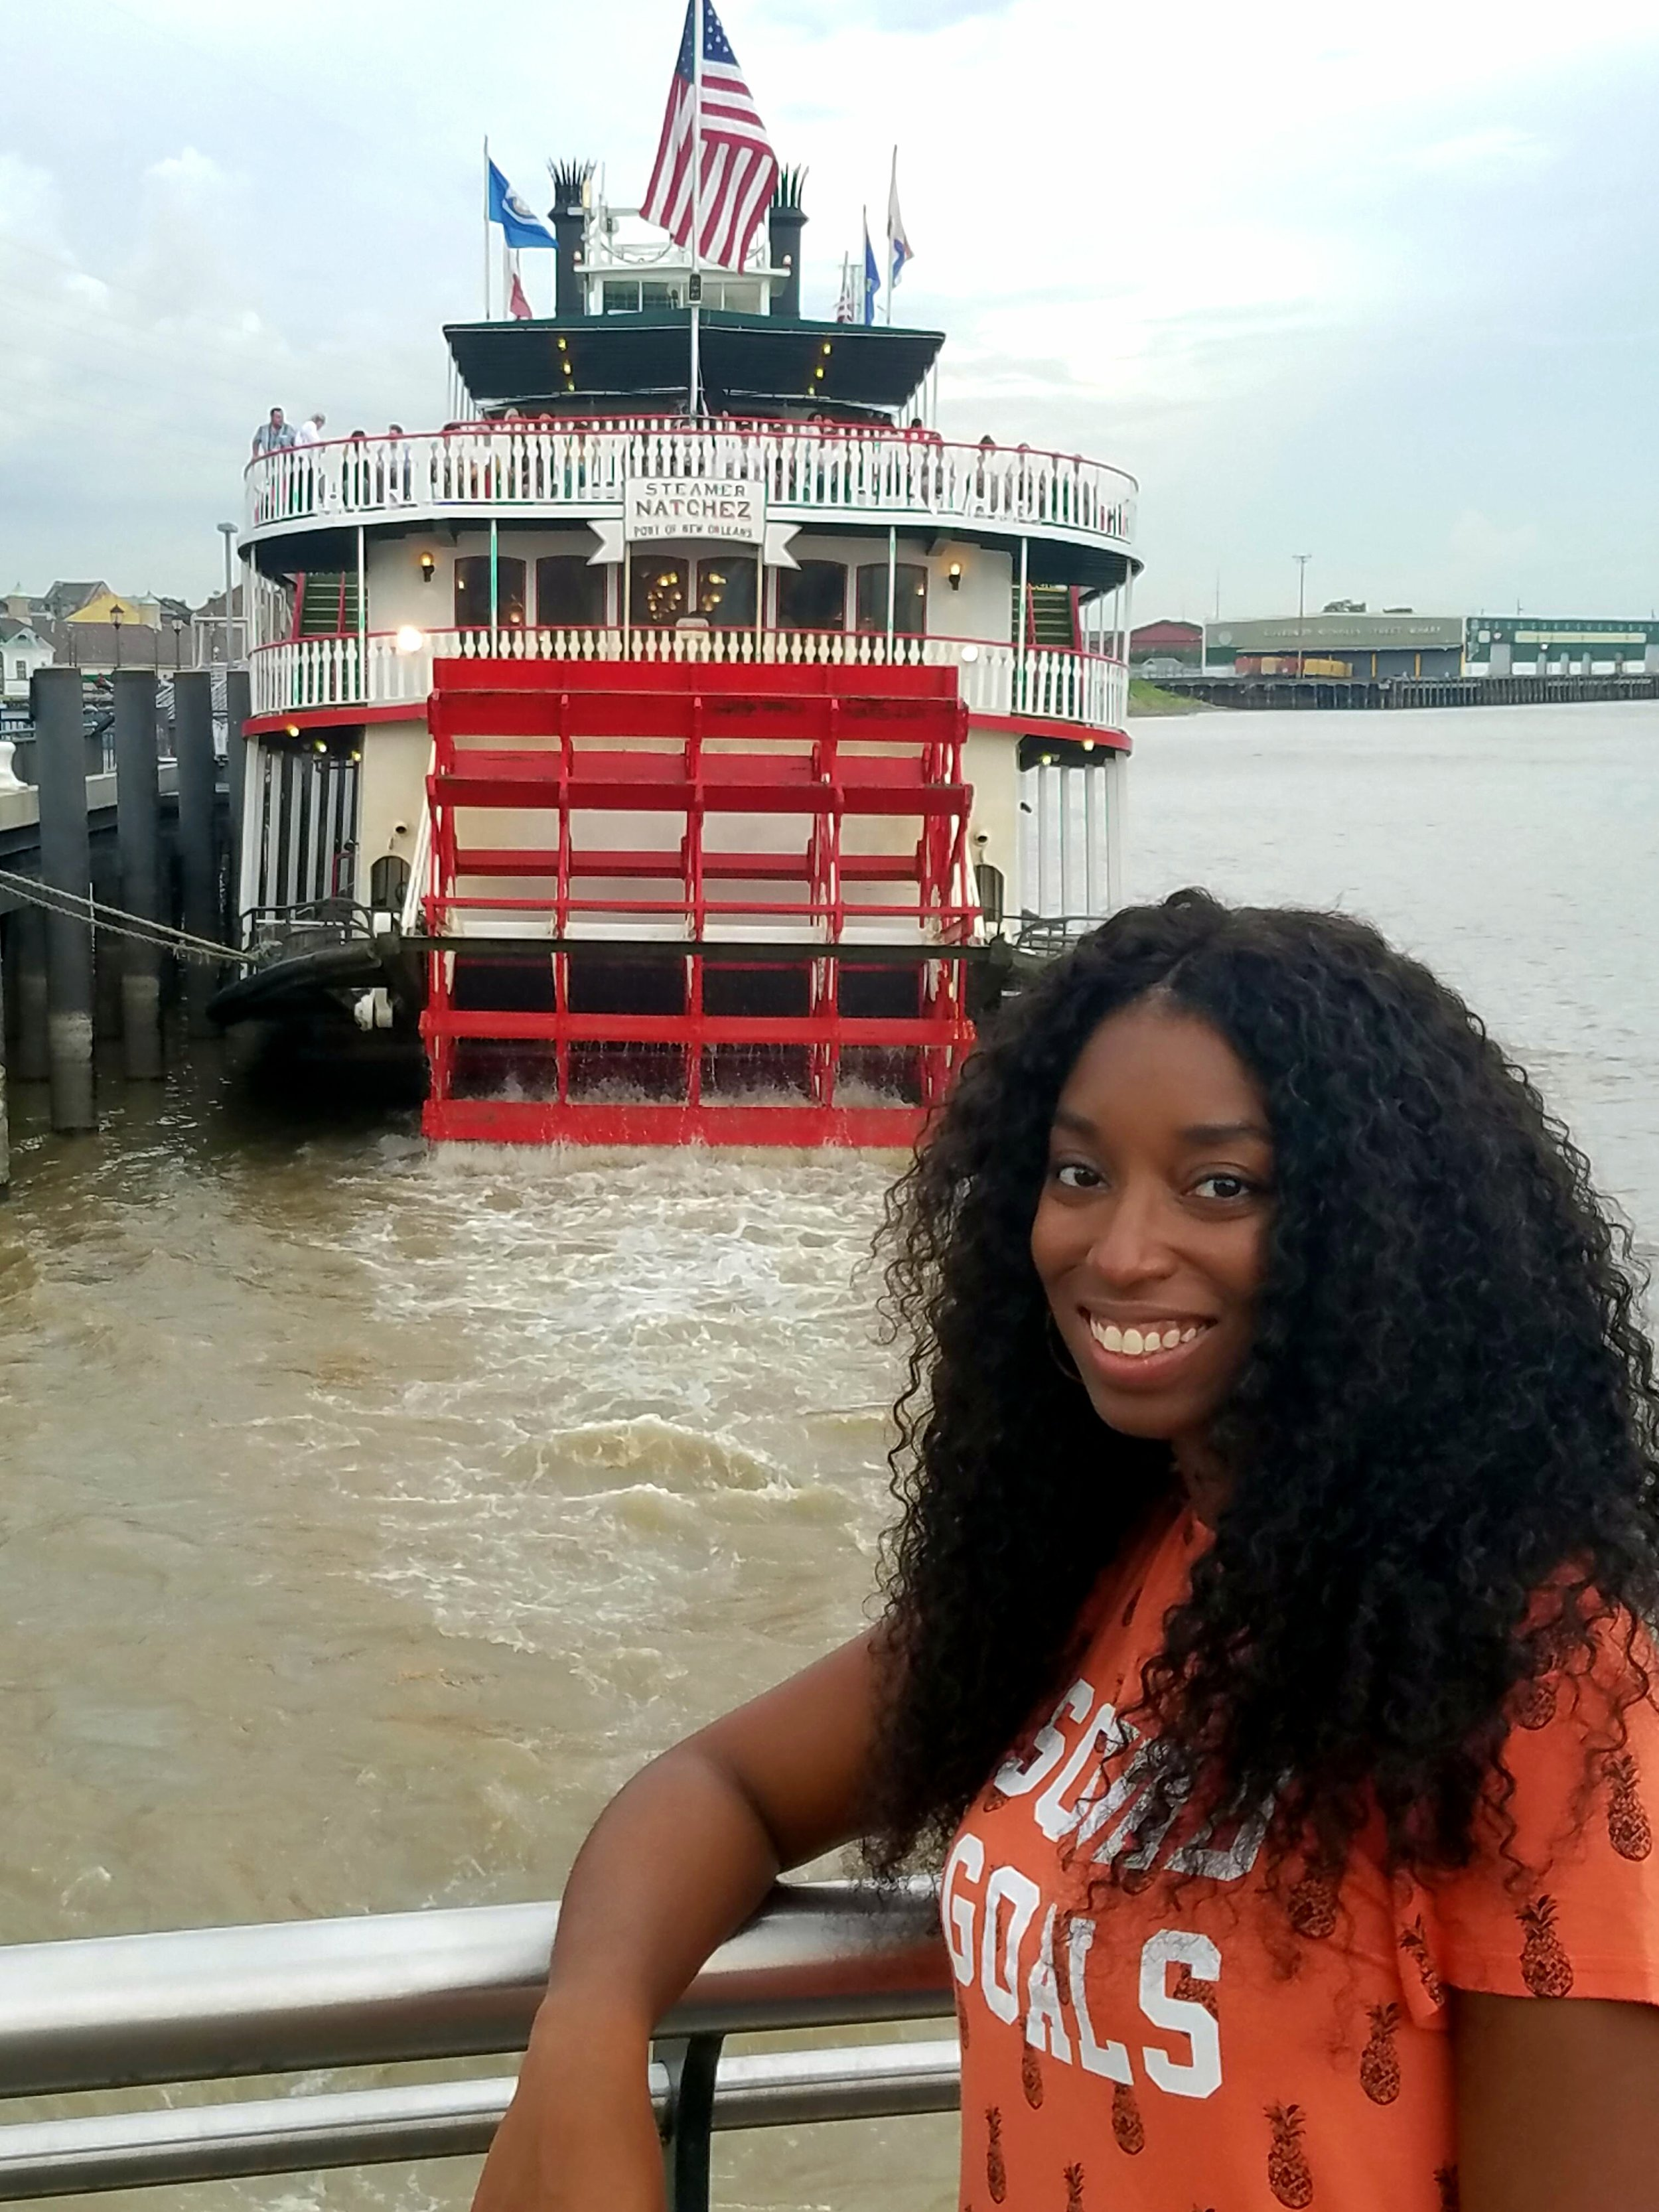 steamboat-new-orleans